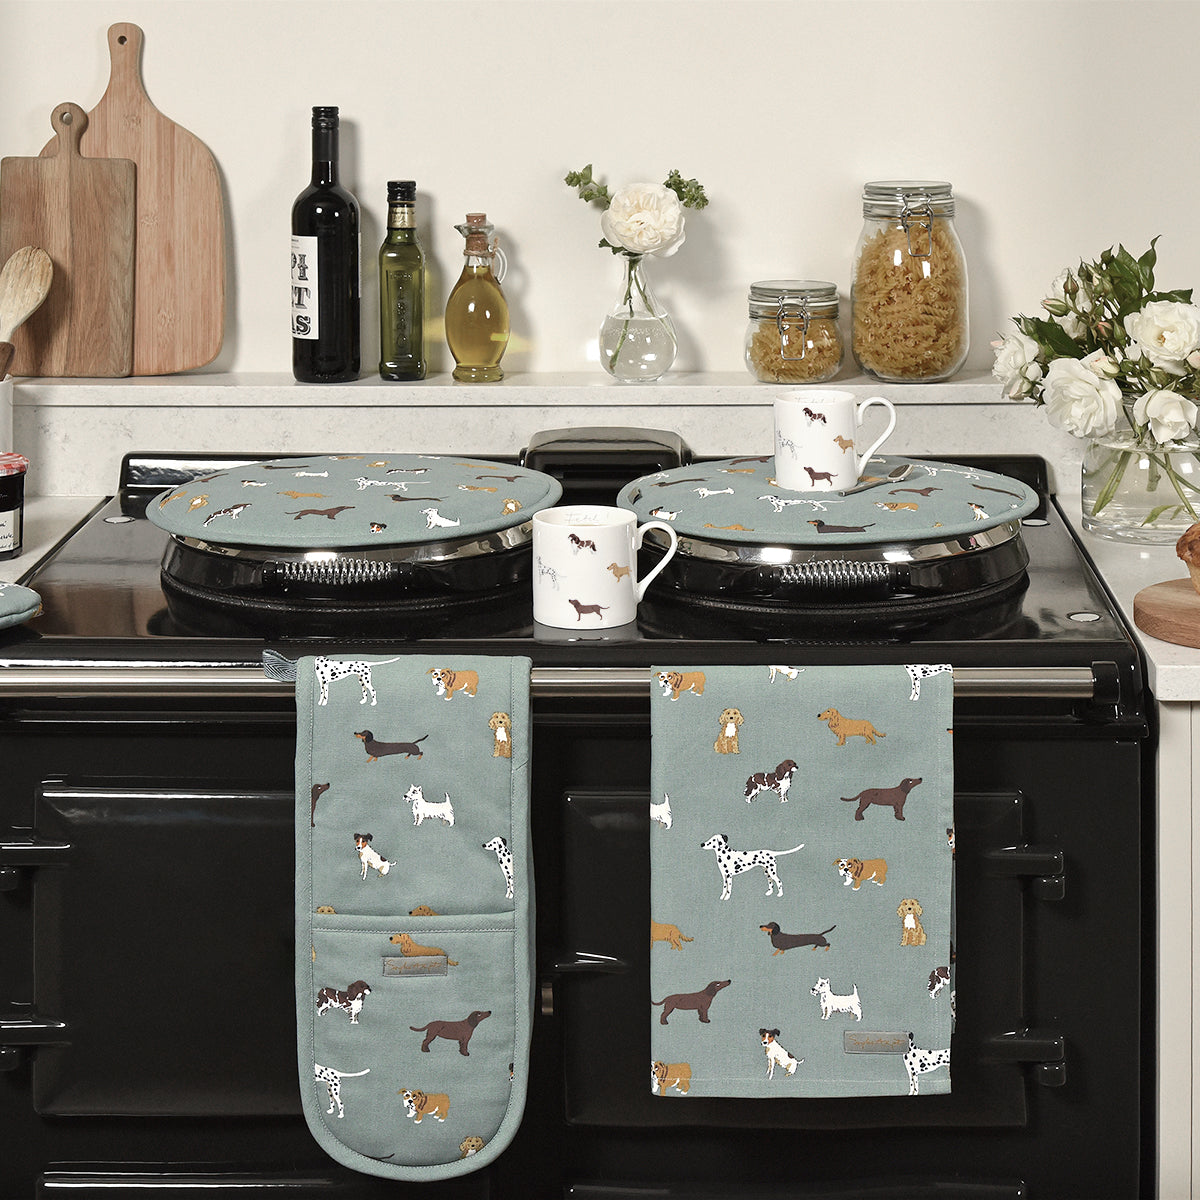 Fetch Double Oven Glove by Sophie Allport